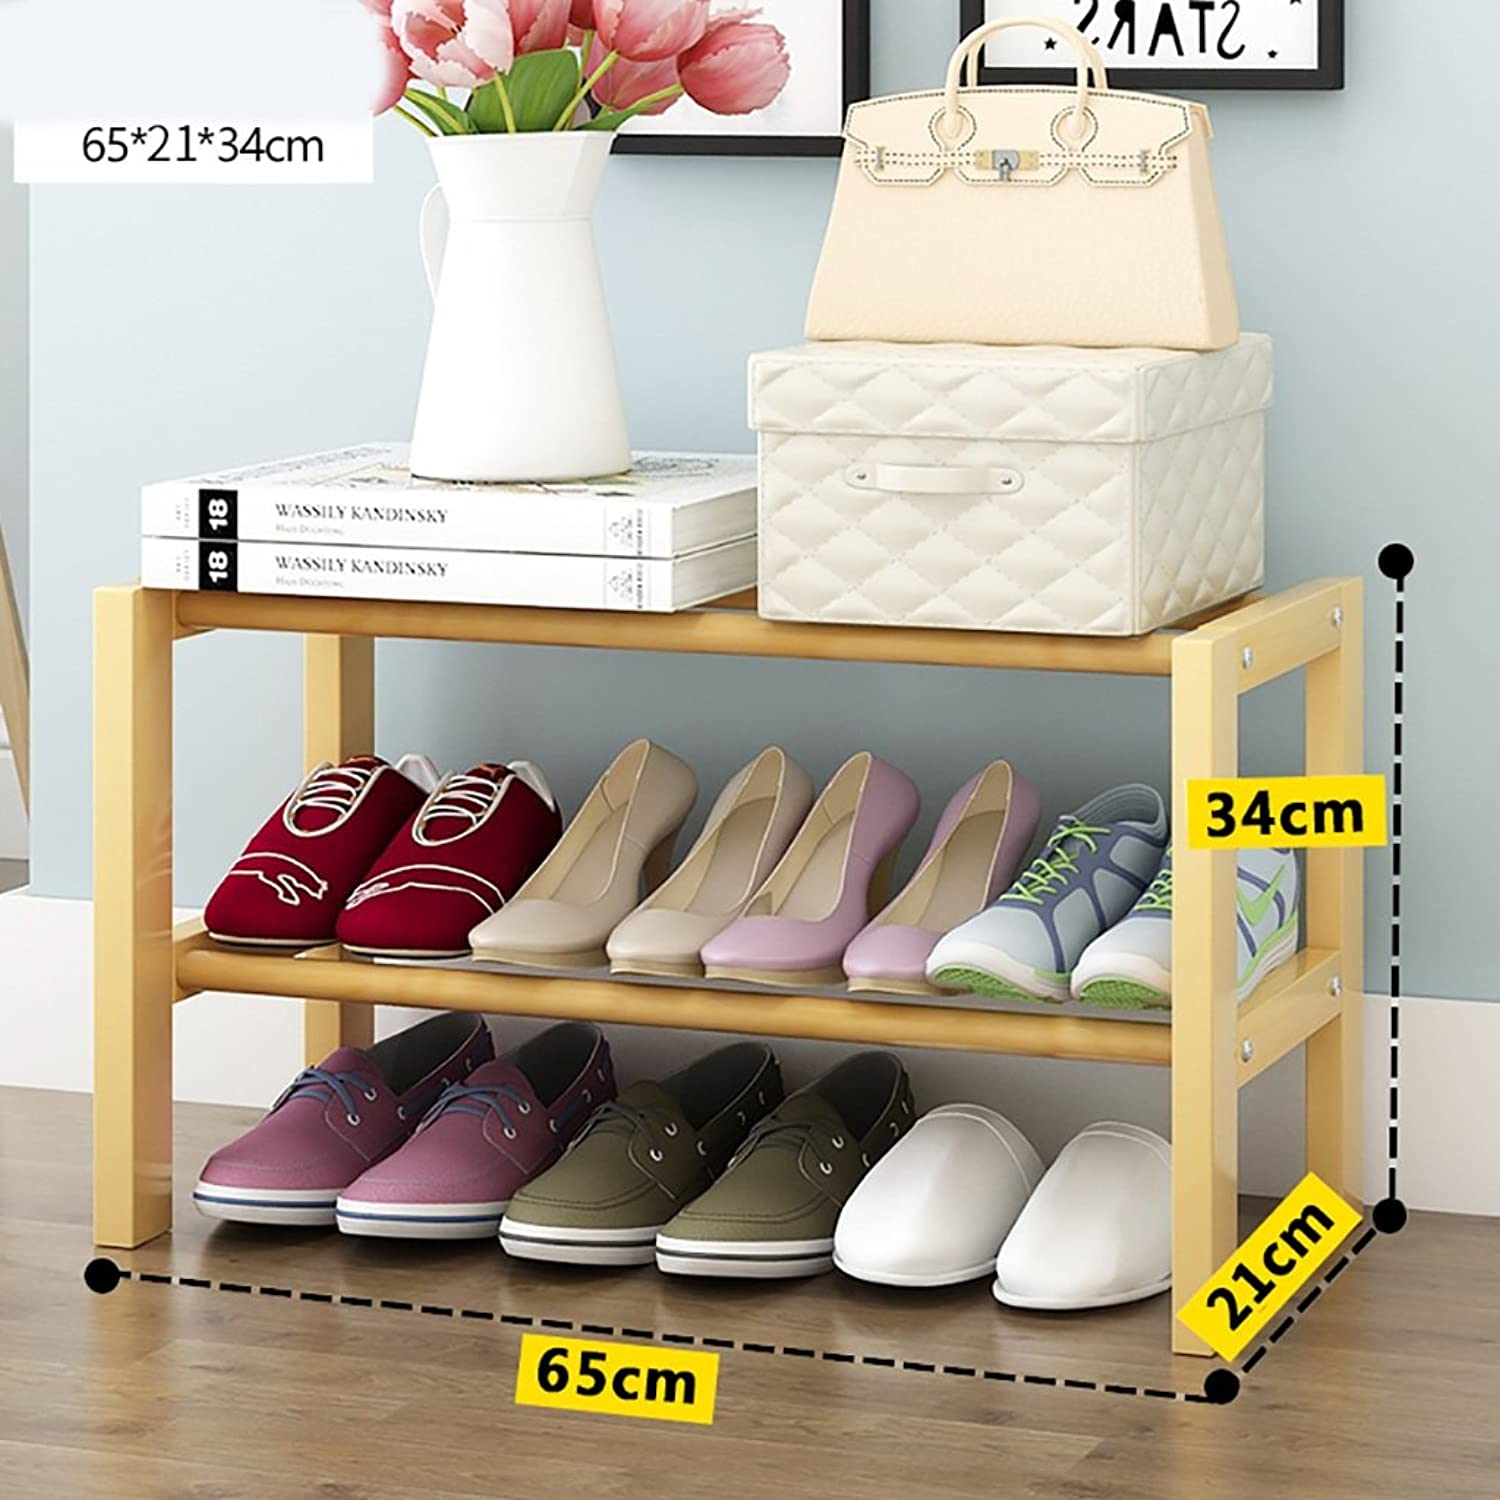 shoes Bench Organizing Rack Small Household shoes Rack shoes Rack Multi-Functional dust-Resistant shoes Rack Household Economy Shelves (Size   65cm)